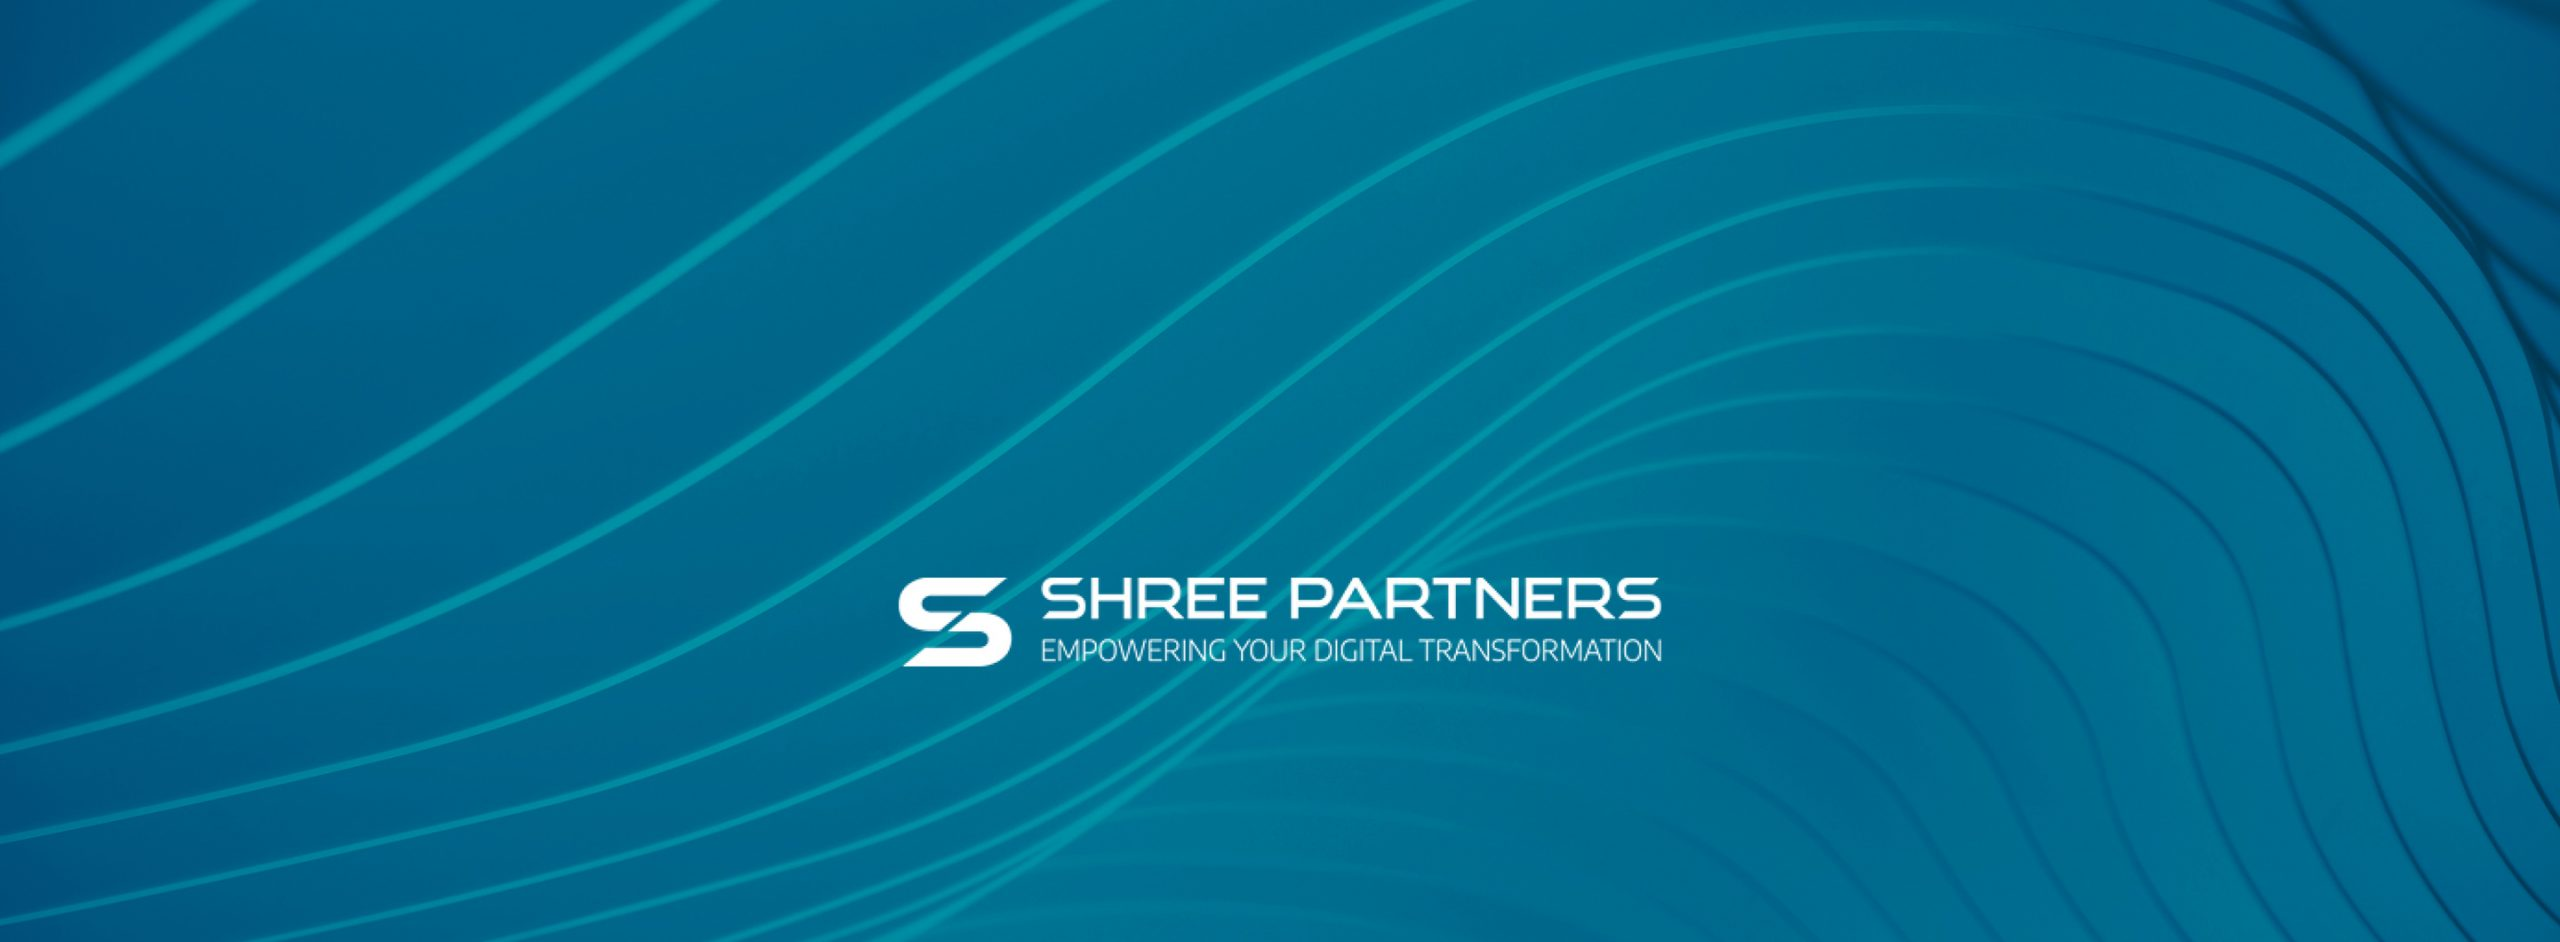 Welcoming Shree Partners to the Persistent